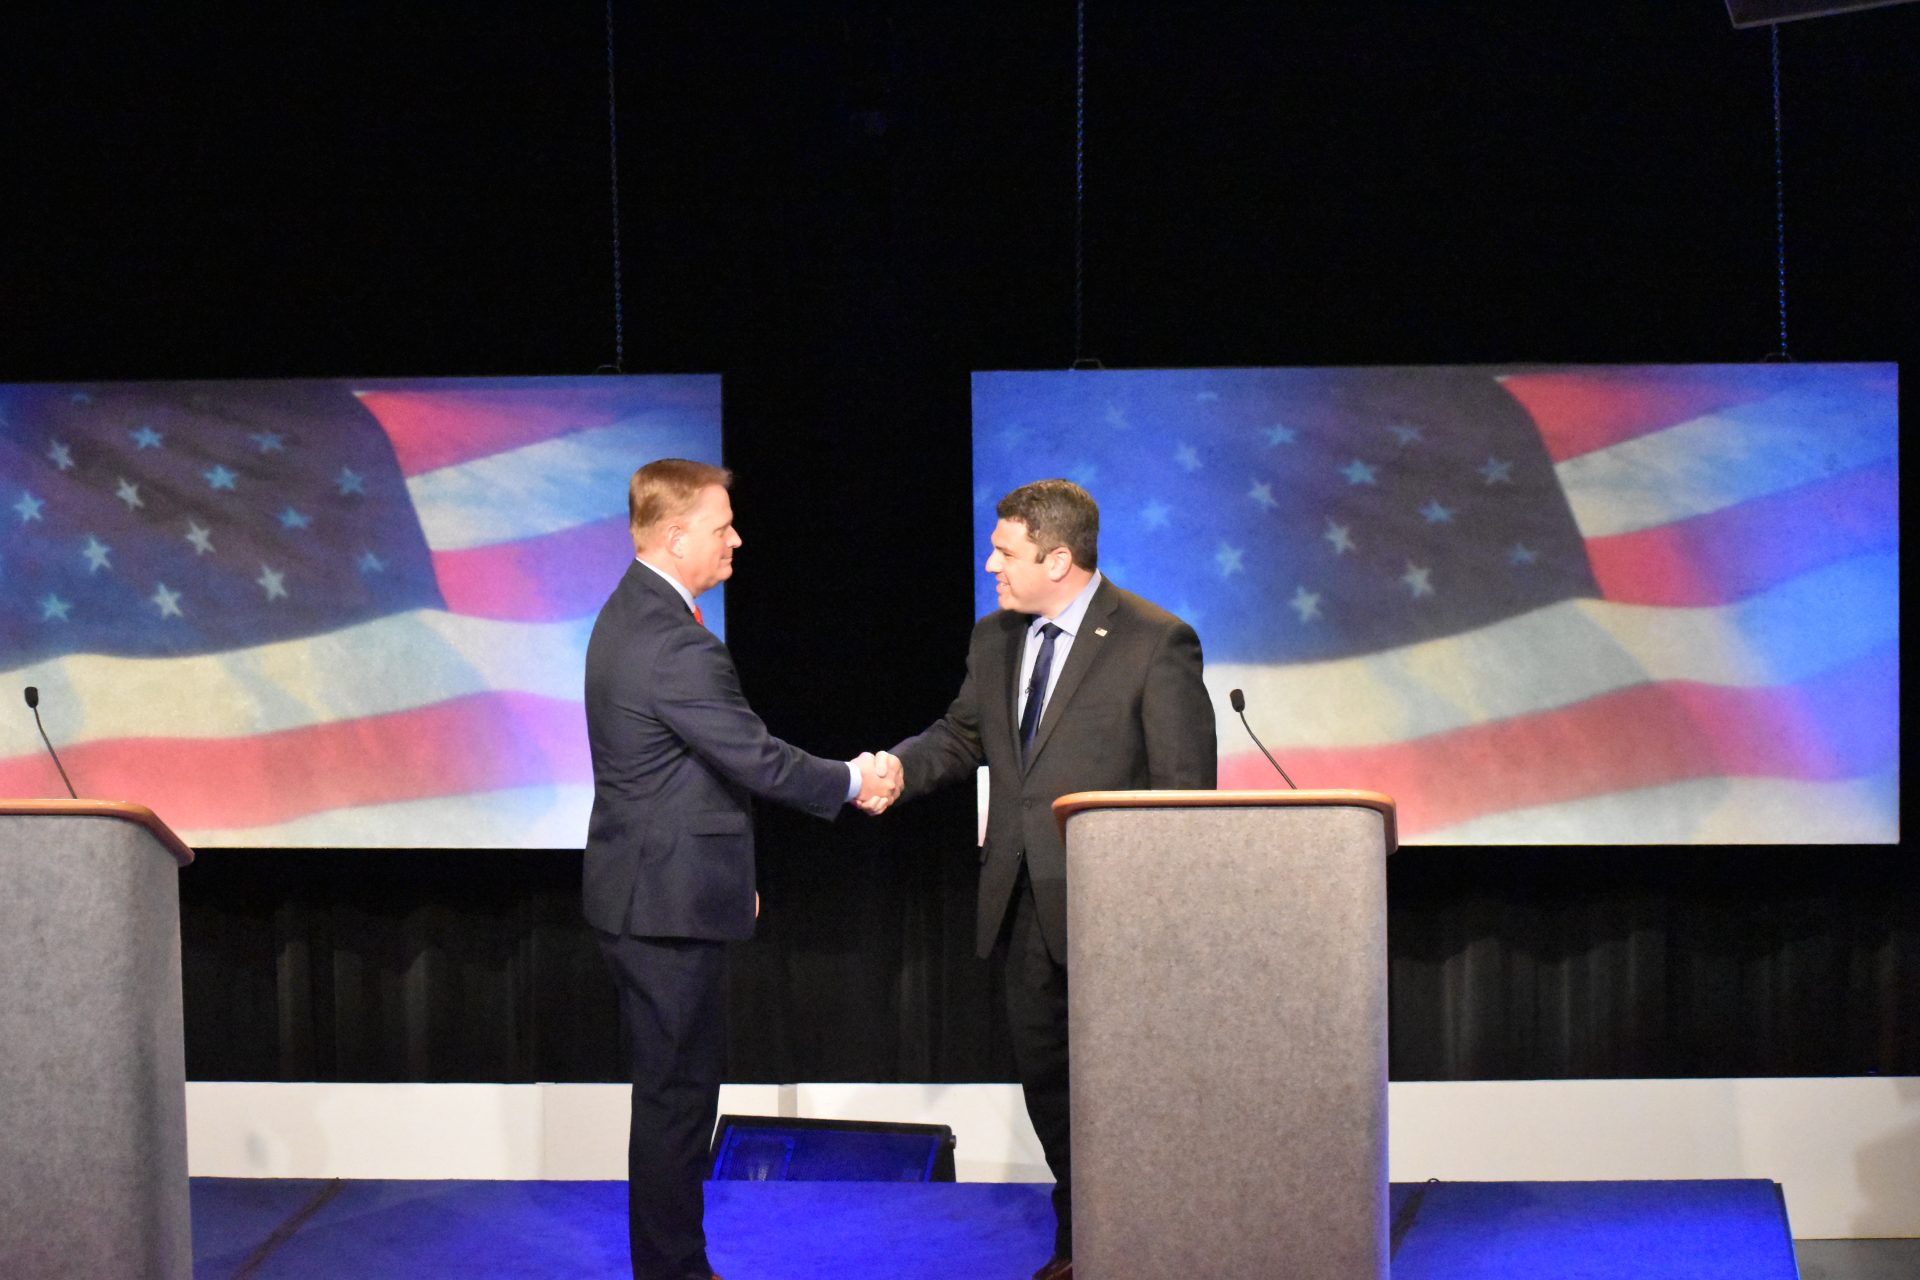 Republican Fred Keller, left, shakes hands with Democrat Marc Friedenberg ahead of a debate for Pennsylvania's 12th congressional district on May 2, 2019.